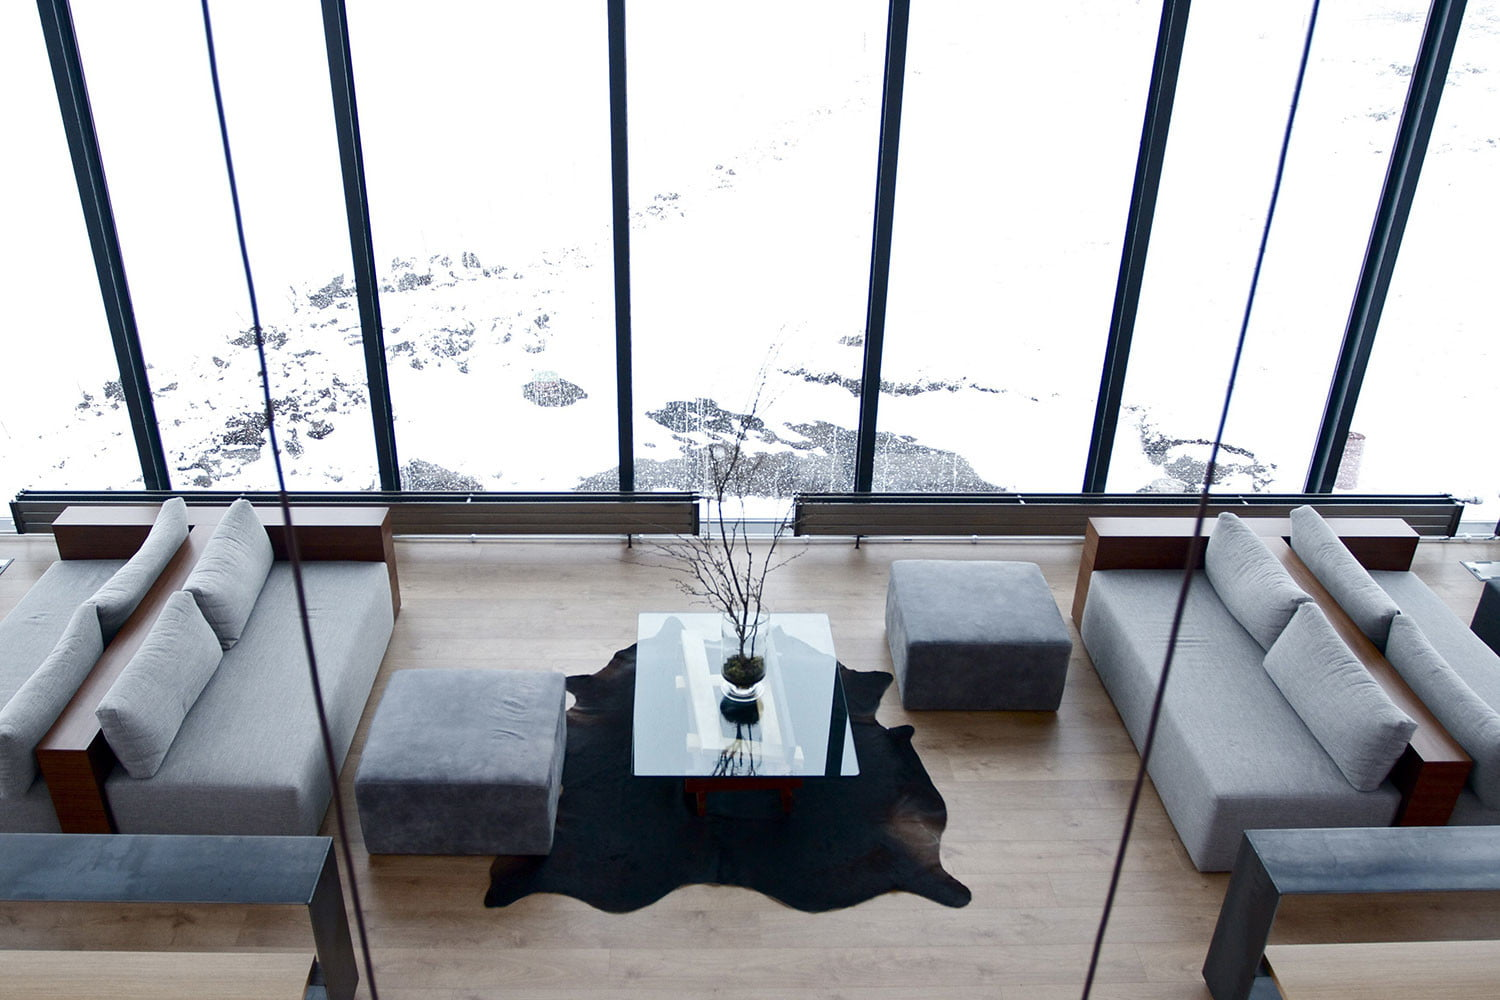 ion adventure hotel in iceland 0013